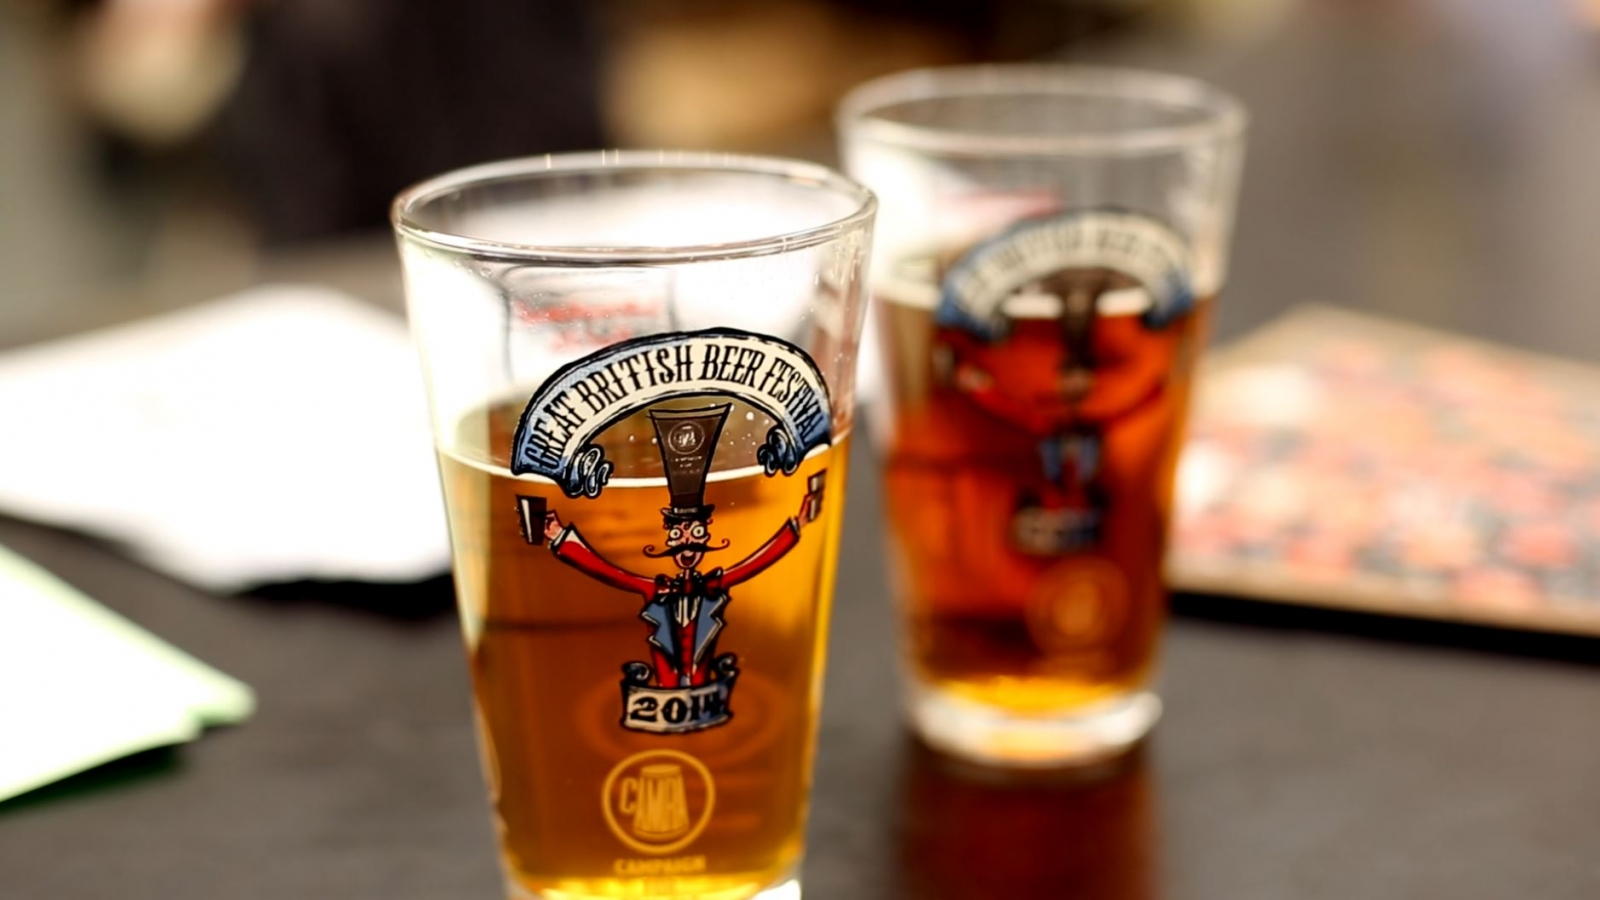 Great British Beer Festival 2014: Inside the UK's Biggest Annual Beer Event